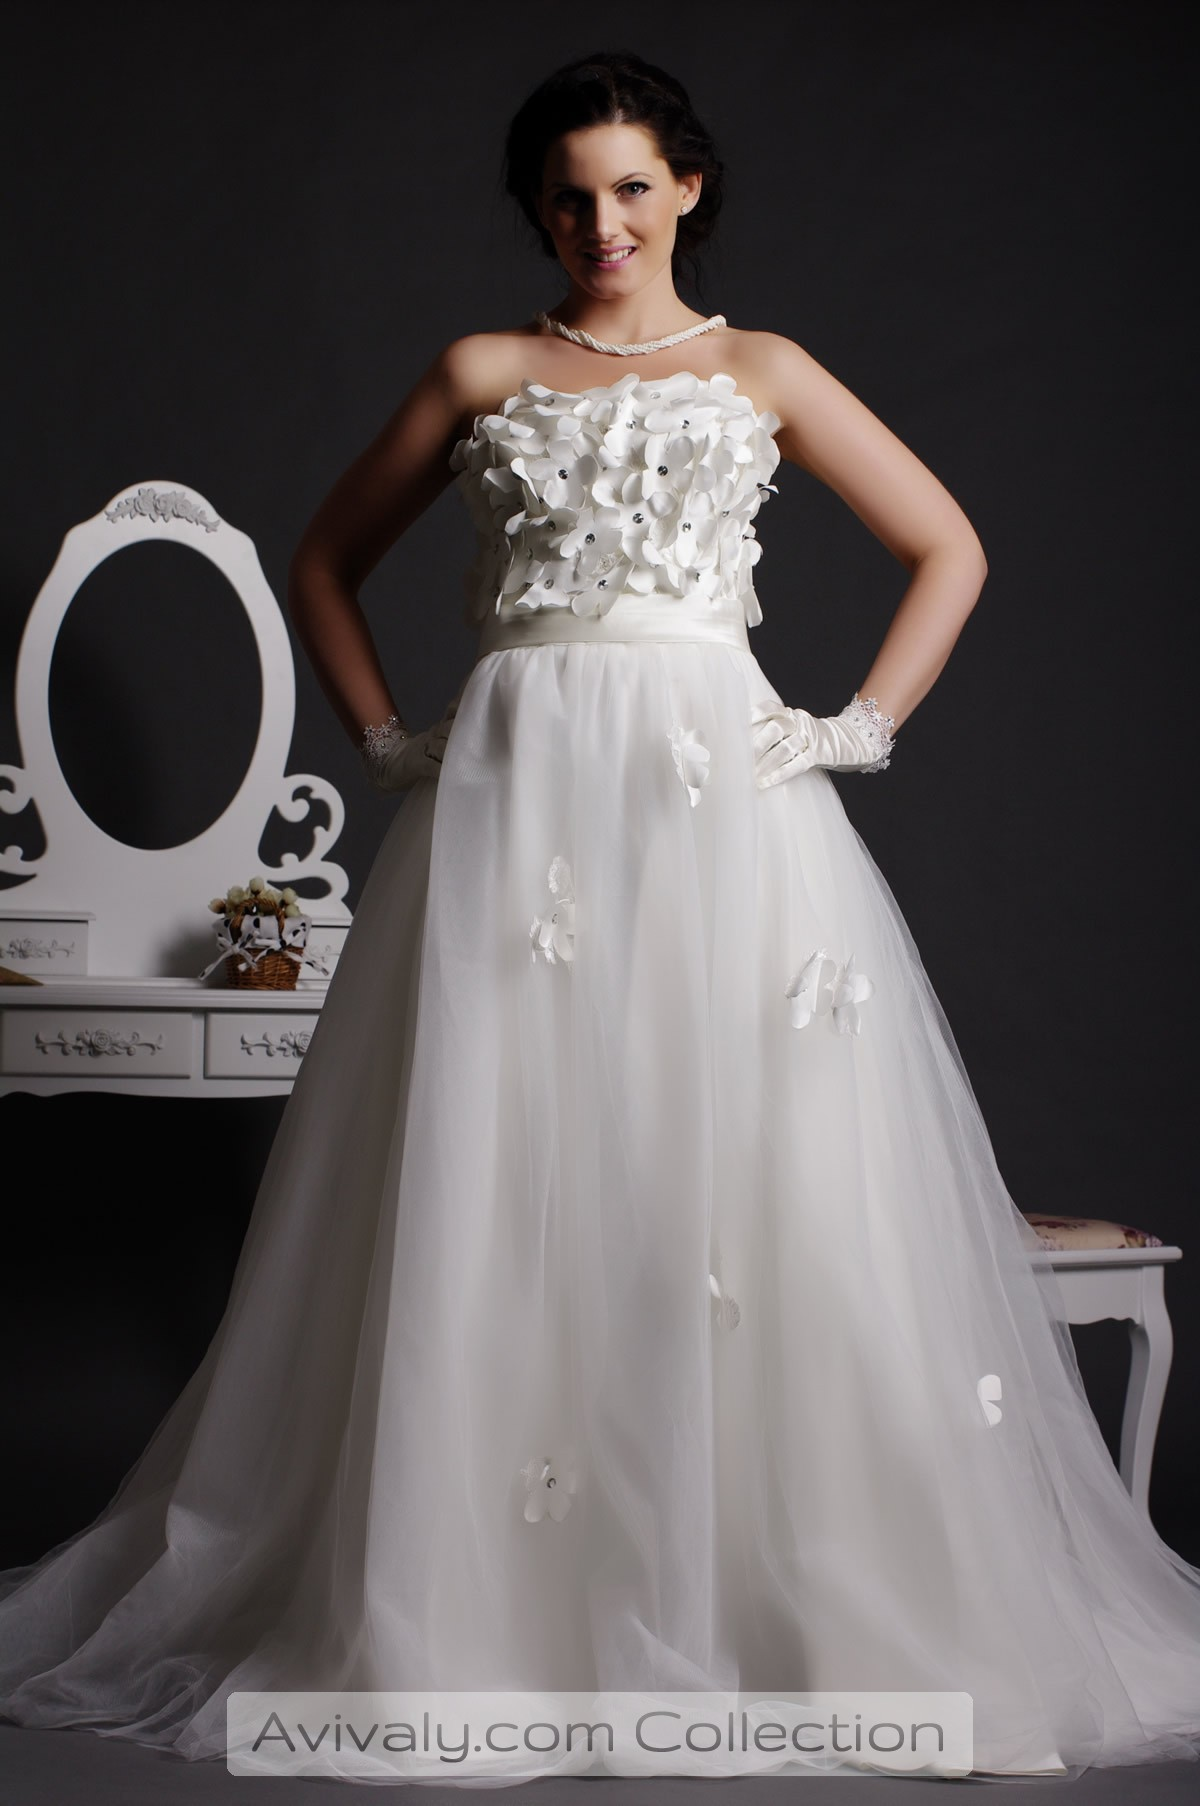 Petal - Strapless Sweetheart Floor Length Tulle Gown with Flowers